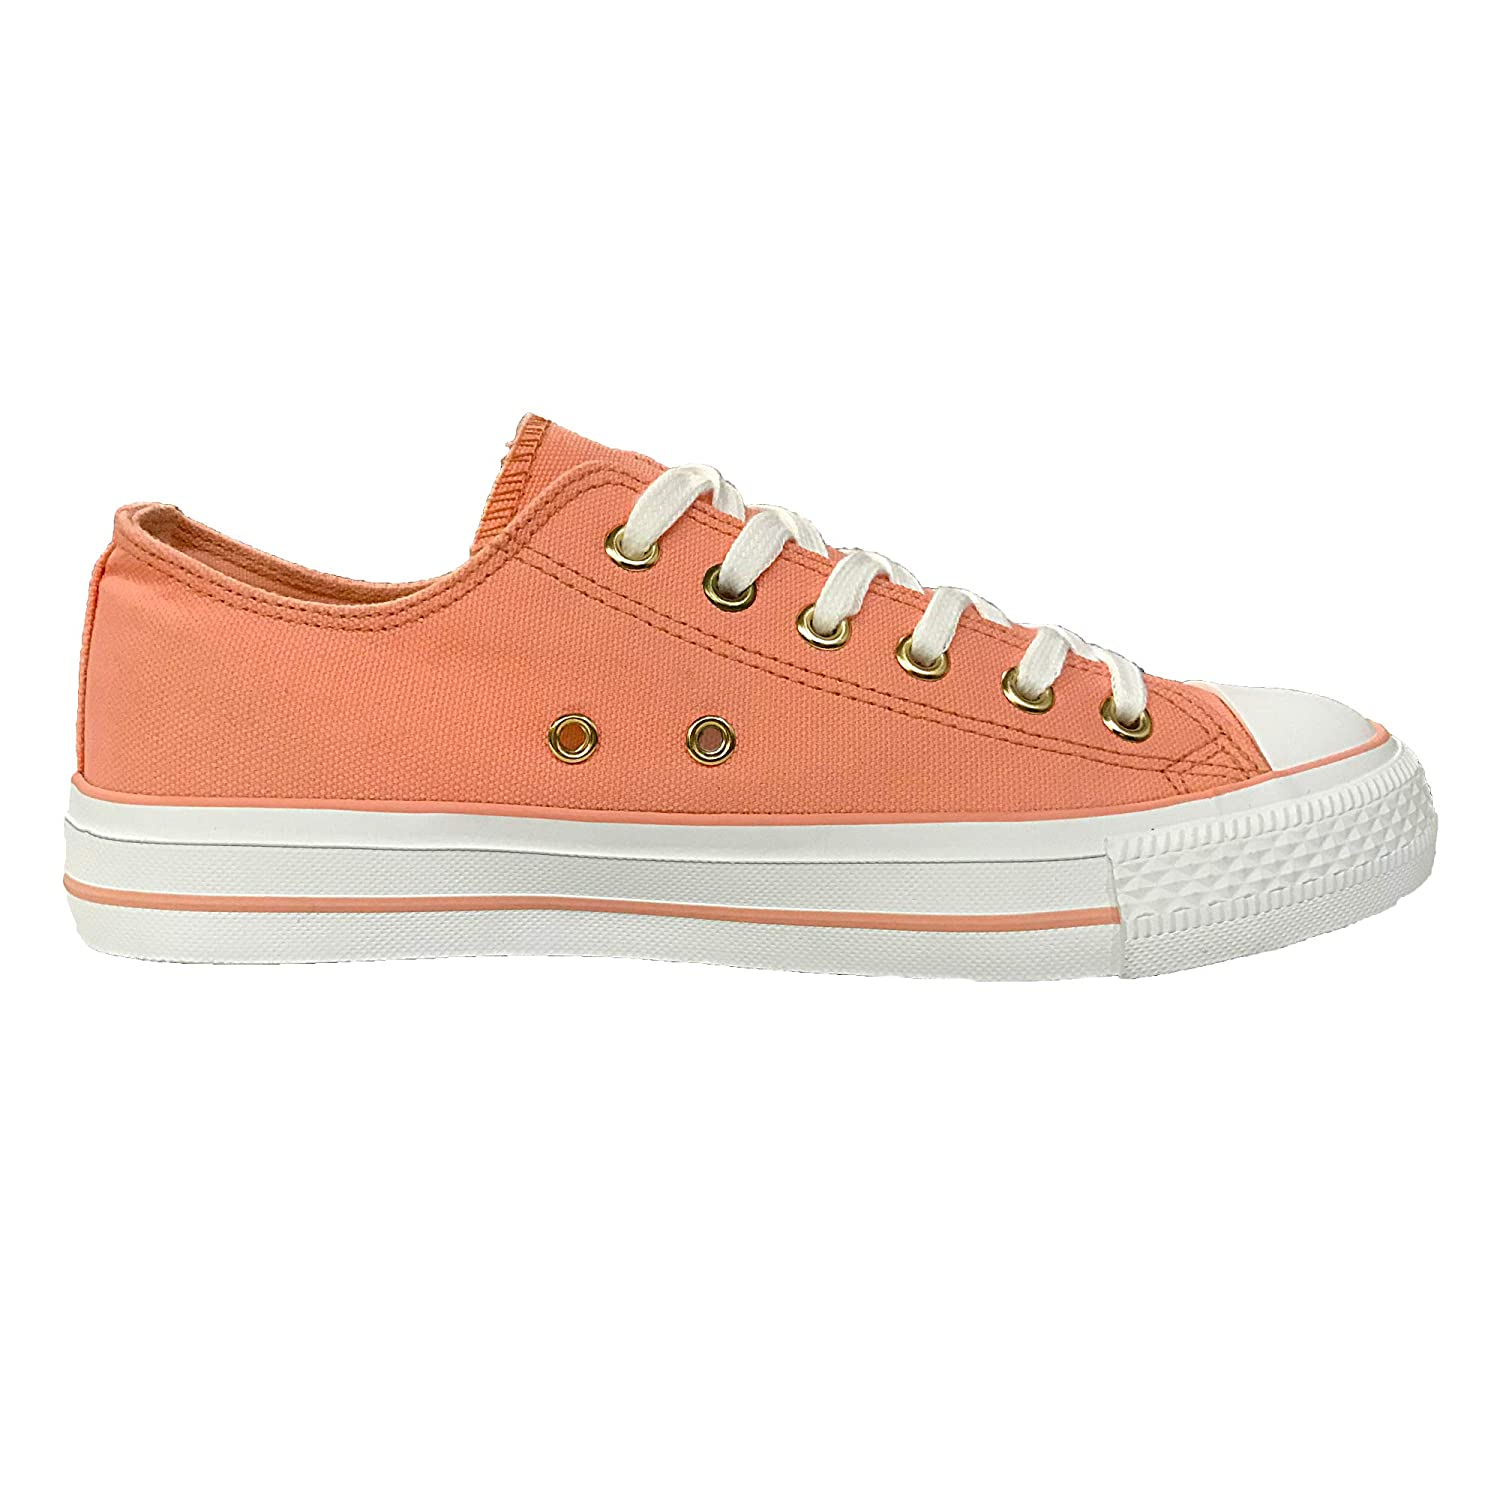 Canvas Classic - Pink Lantina Women's Low Top Fashion Sneakers